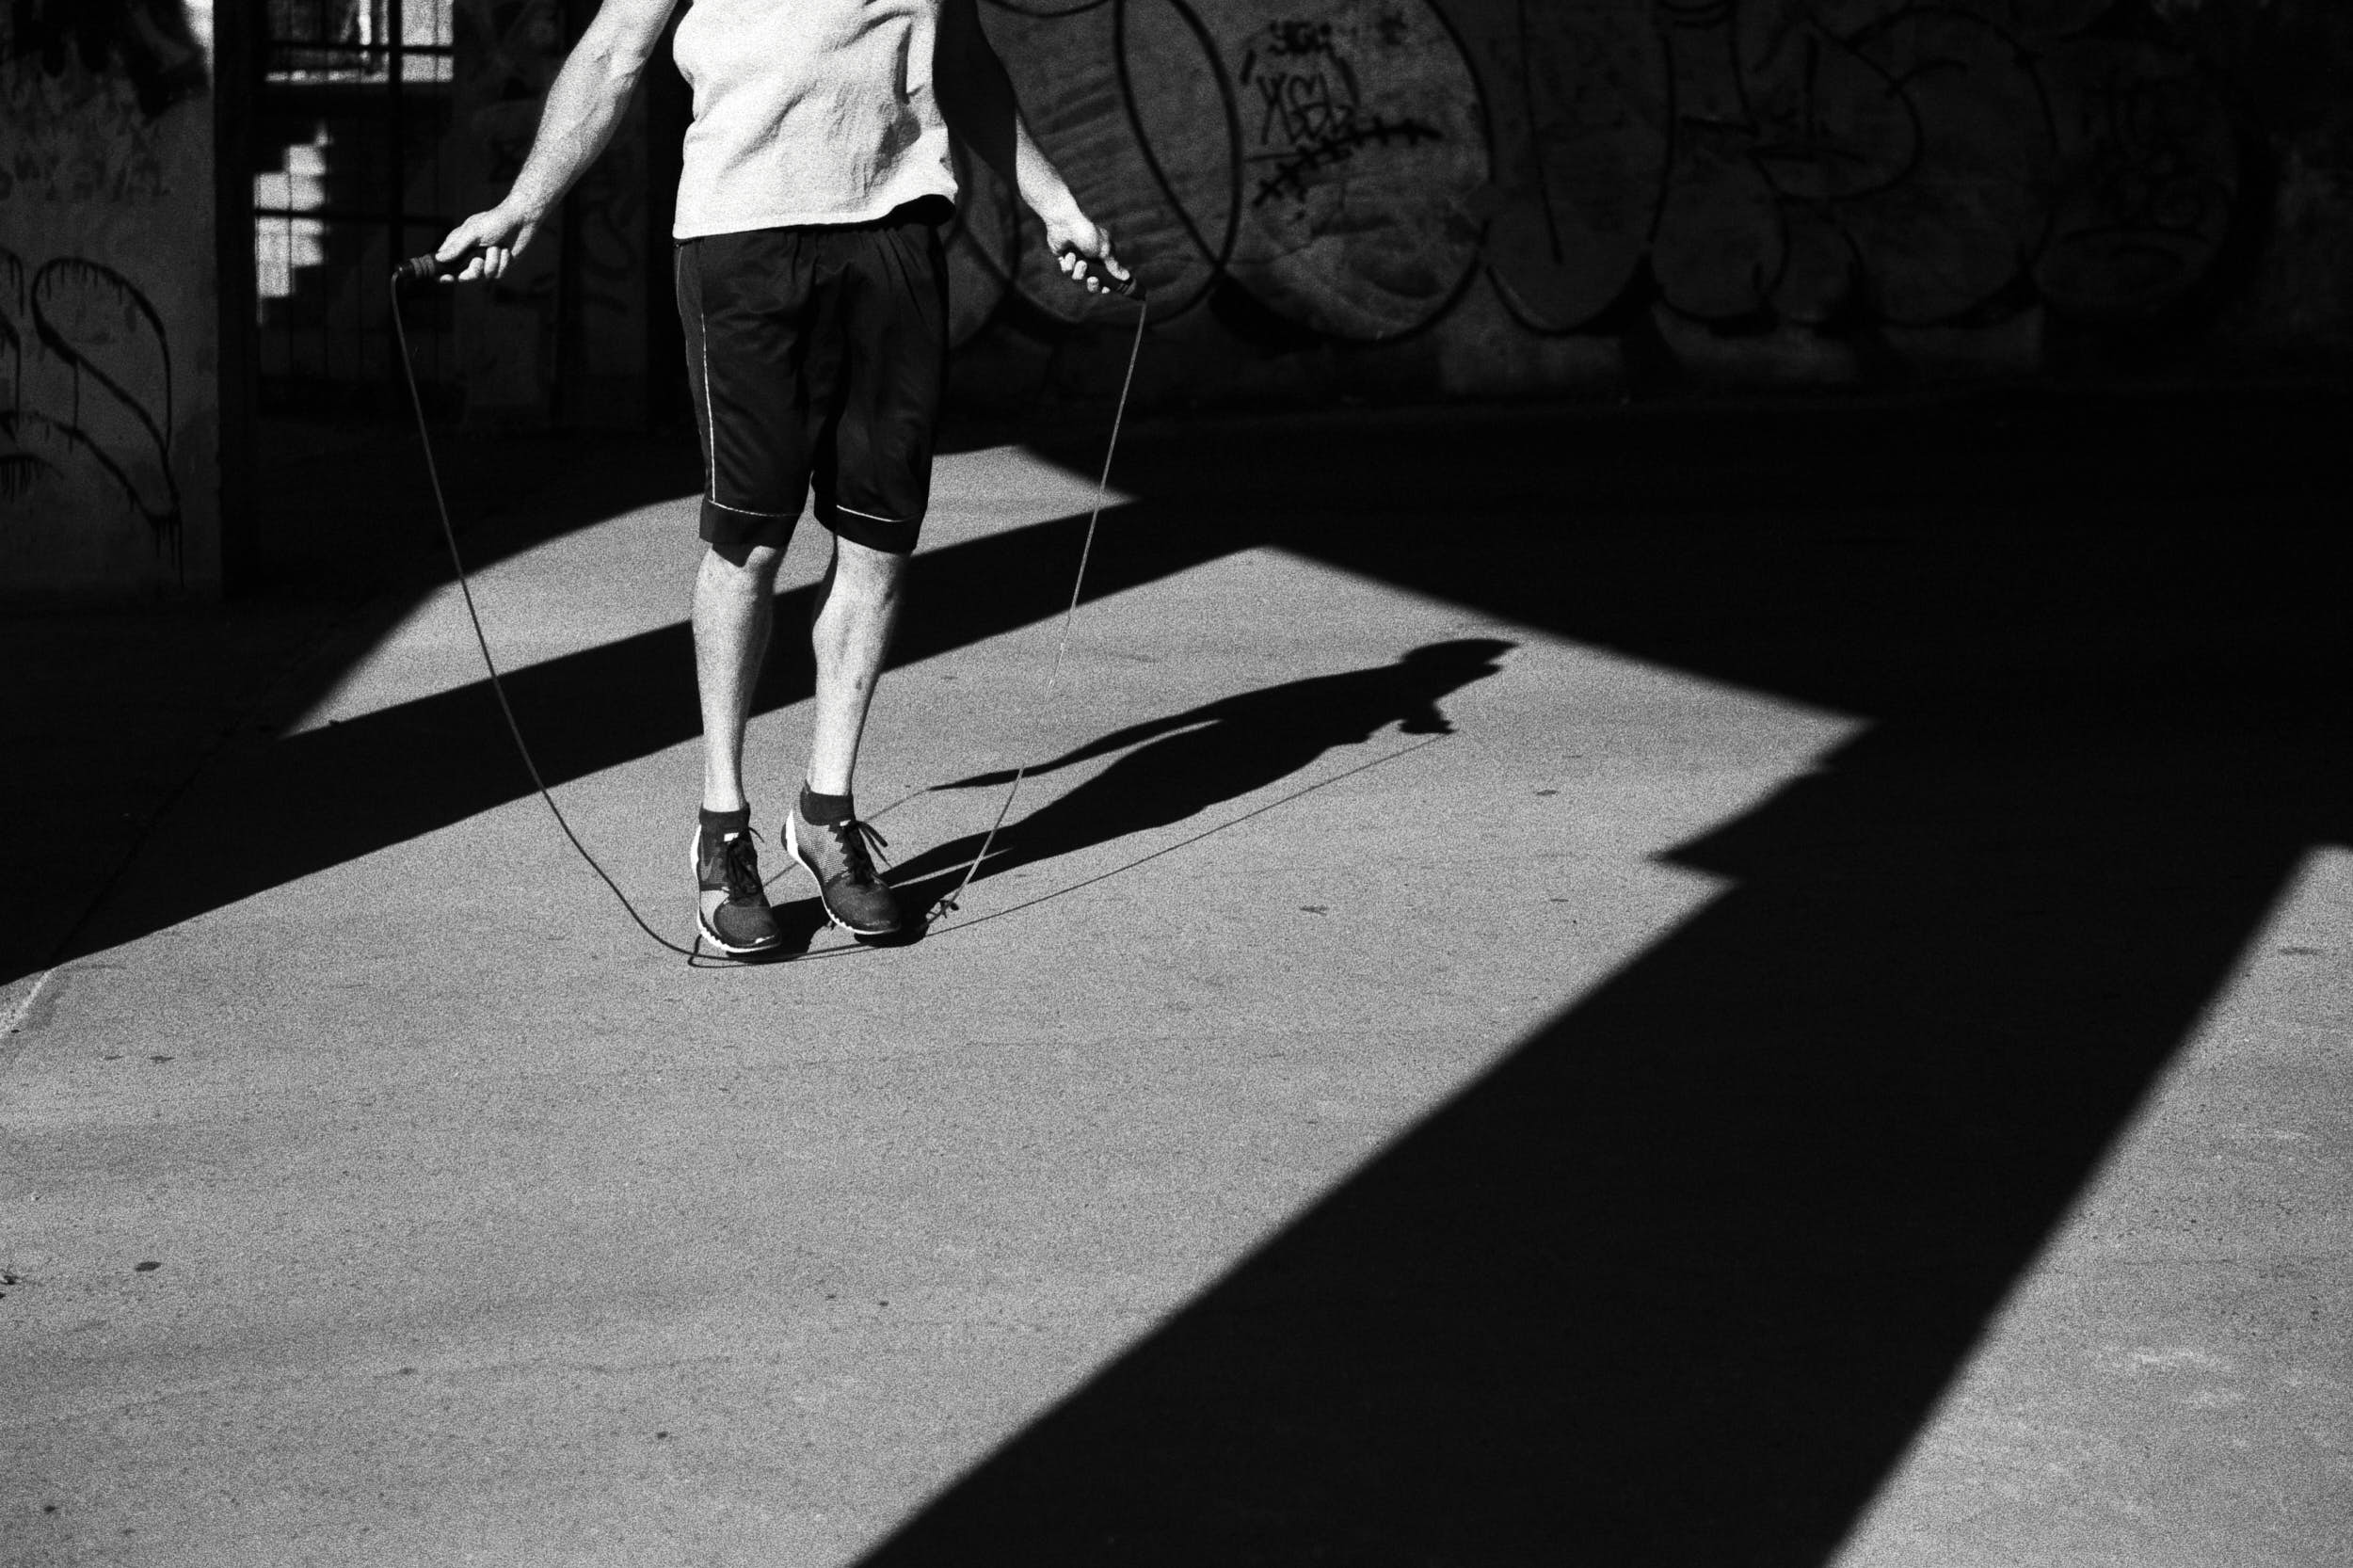 High contrast detail of a man working out with a jump rope.